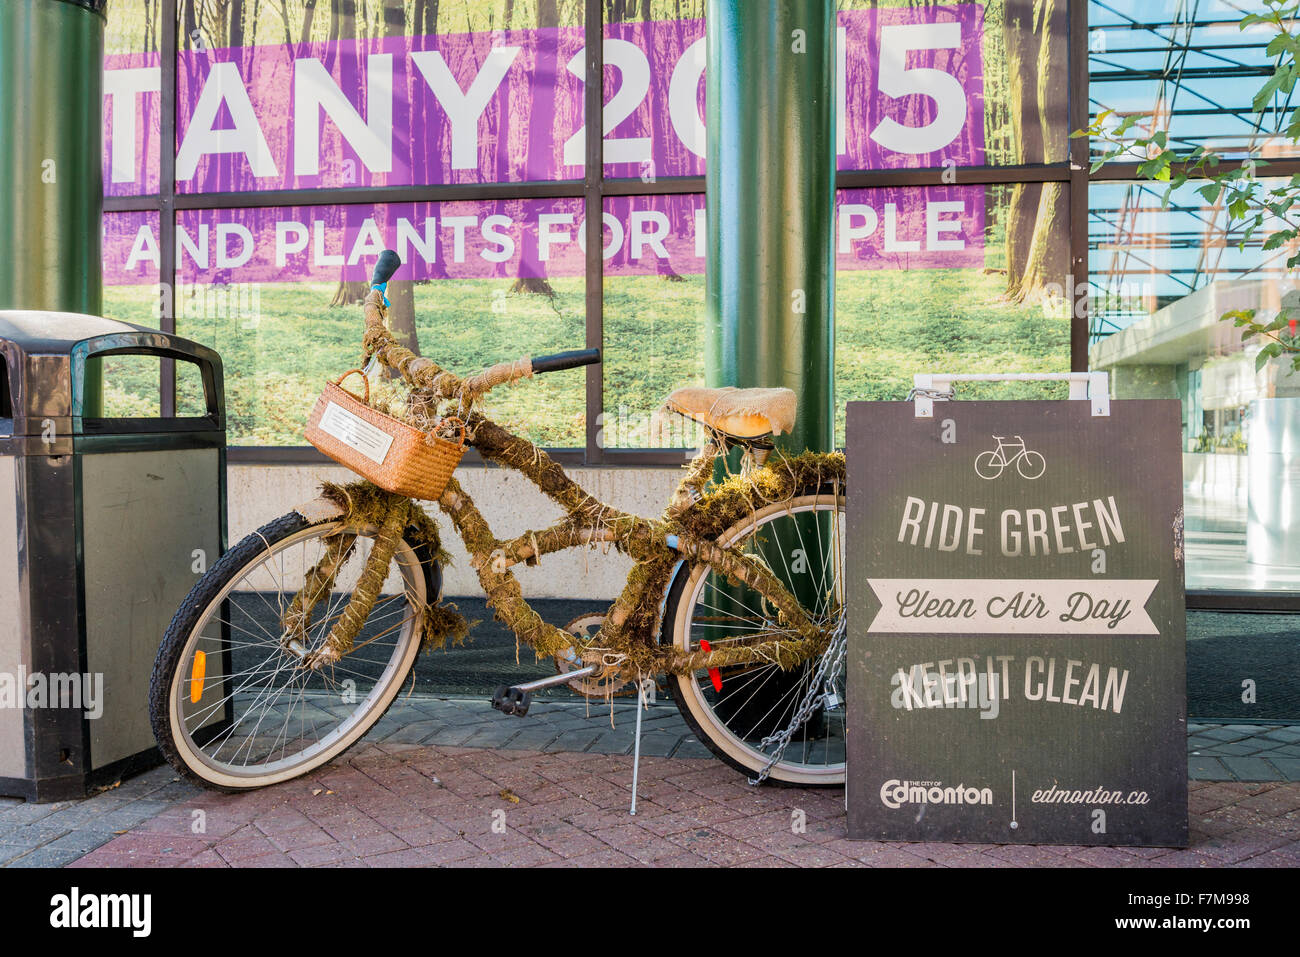 Bicycle wrapped in moss , advertising Clean Air Day, Edmonton, Alberta, Canada - Stock Image